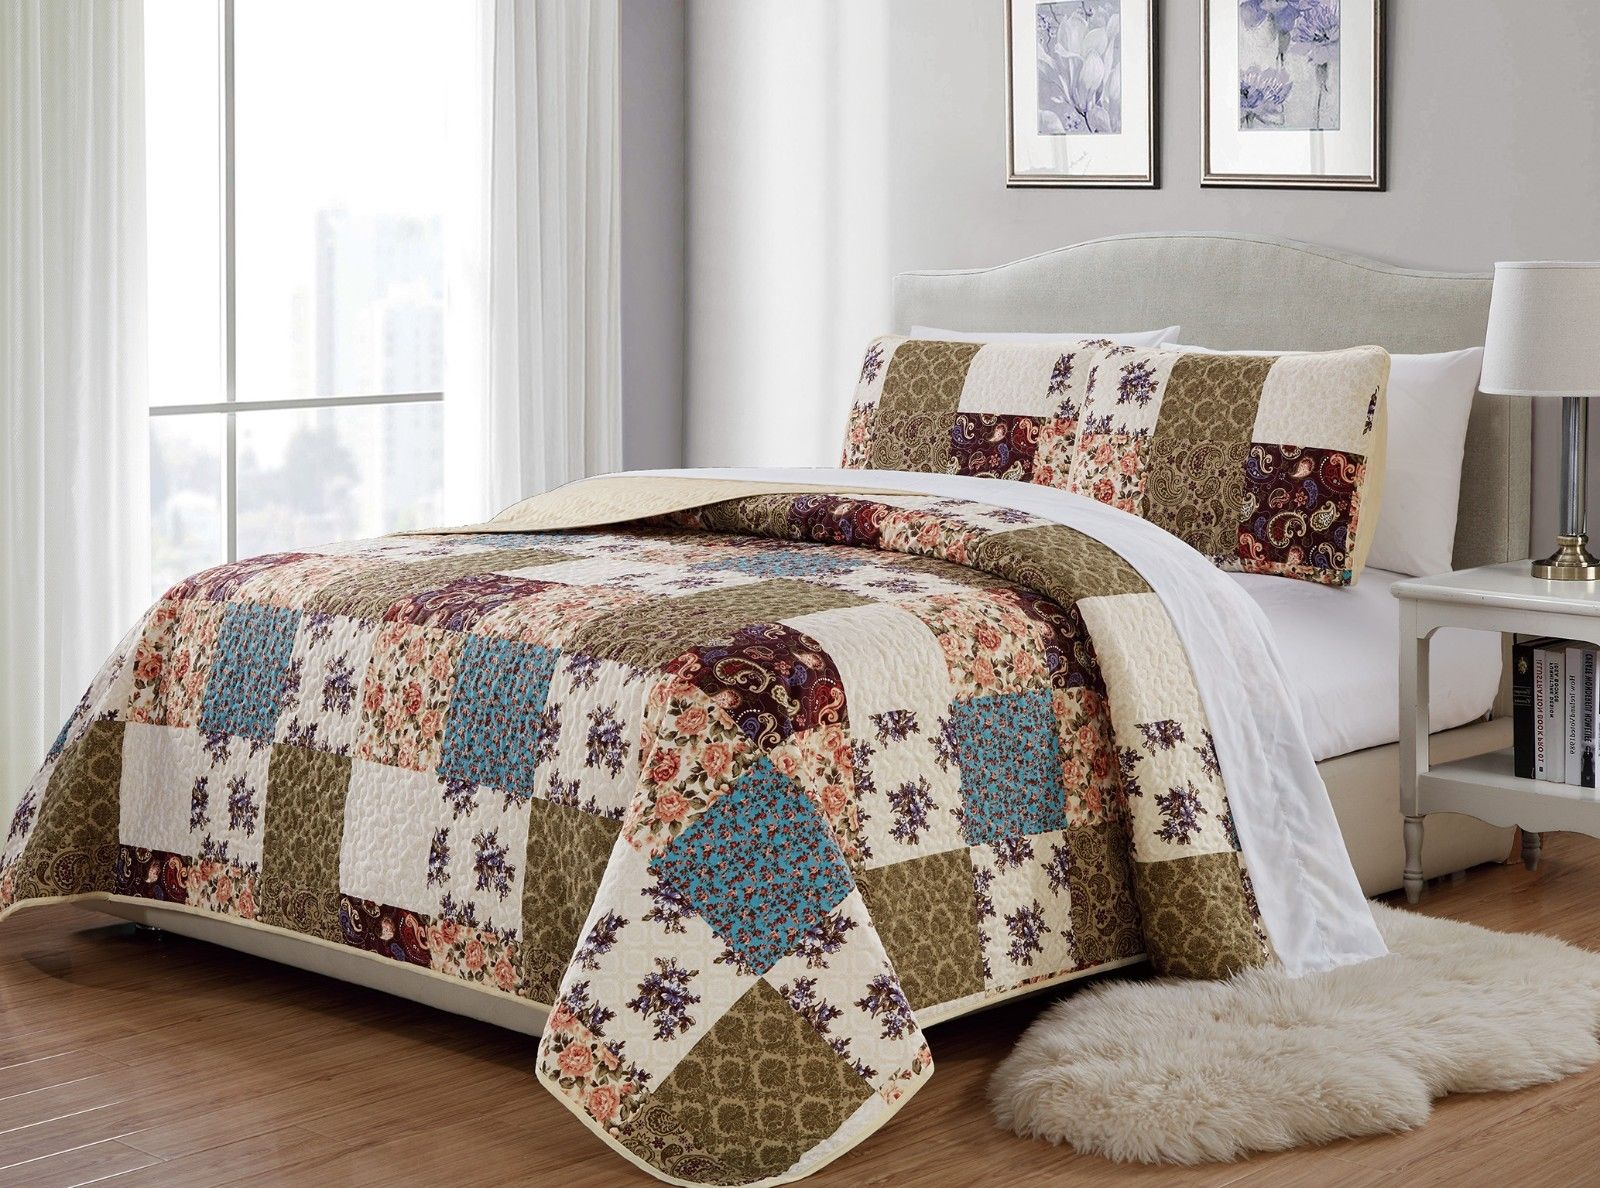 Fancy Linen 3pc Full Queen Bedspread Quilted Print Floral